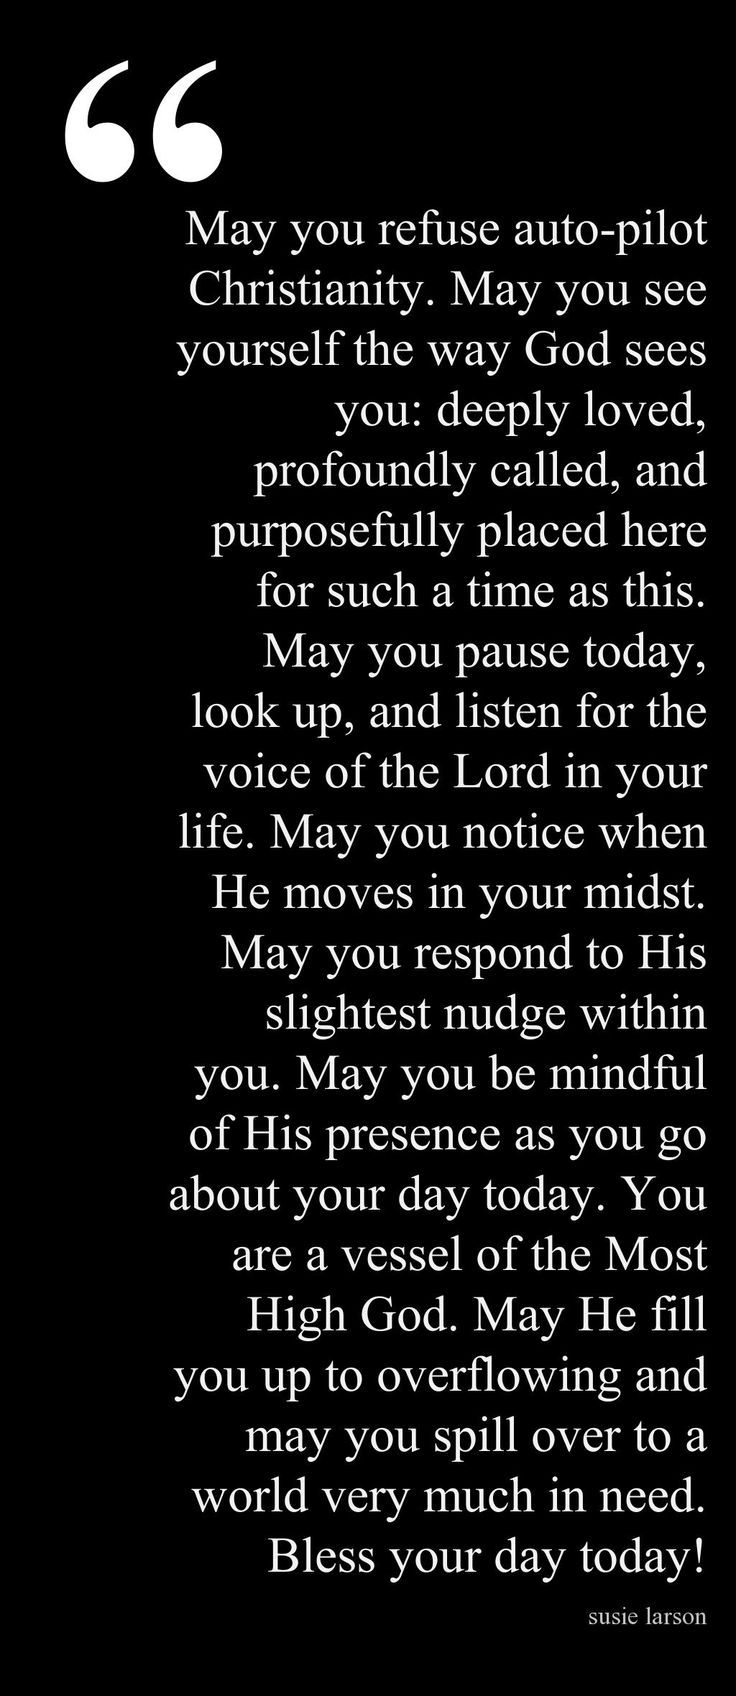 Start a Day Blessing: You are fearfully, wonderfully made. God has something get in store for your life. Just take heed & obey His Word ~ and watch Him move for you.: